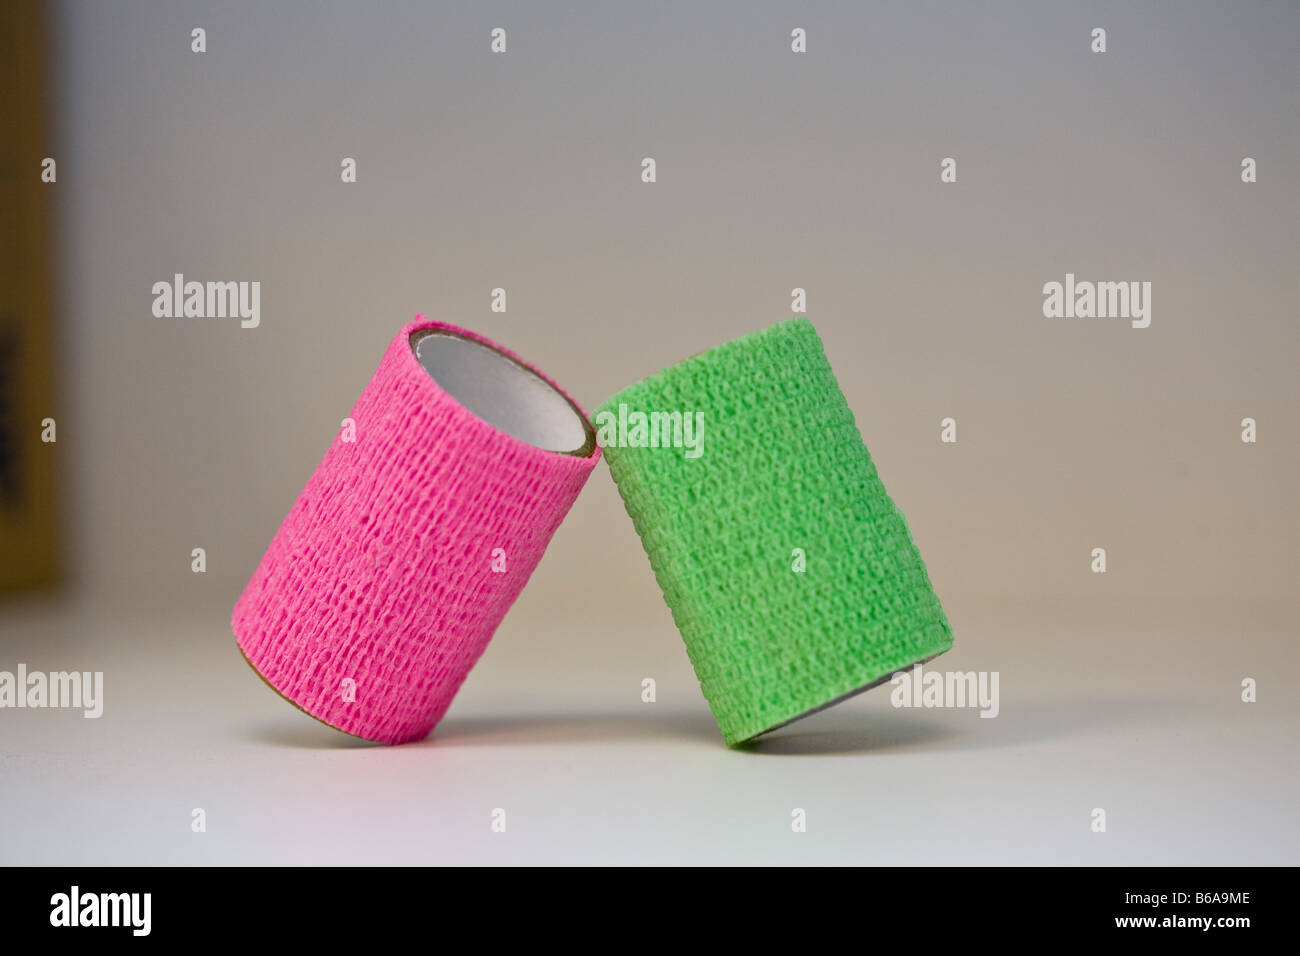 Pink and green rolls medical tape propped against each other against white/gray background - Stock Image